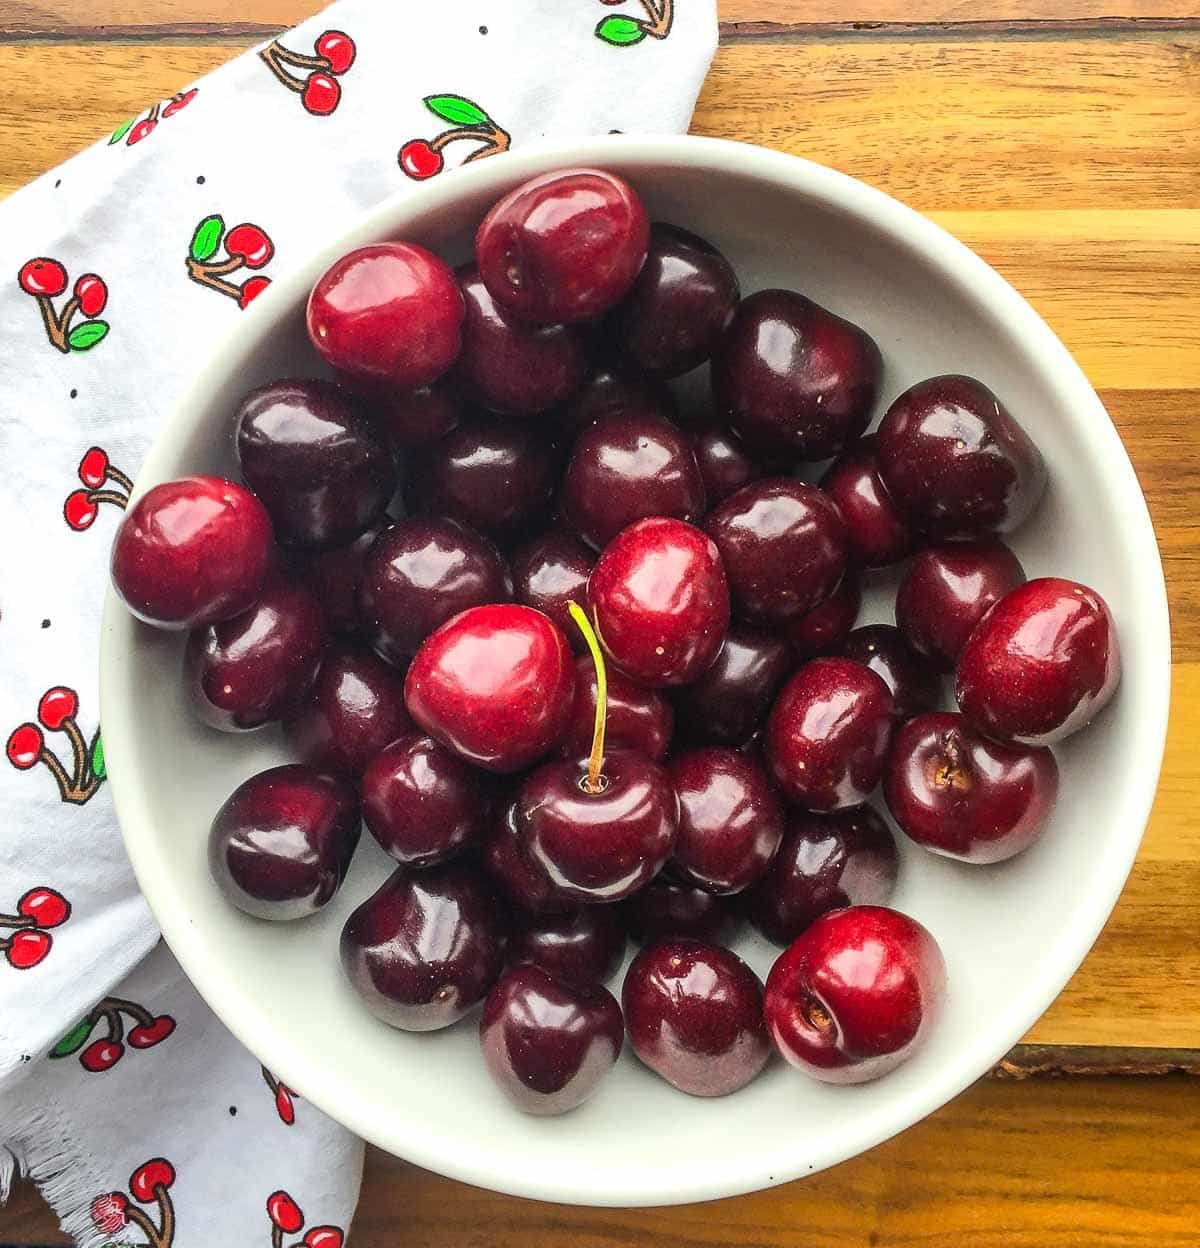 Tart Cherries are a Nutritional Powerhouse